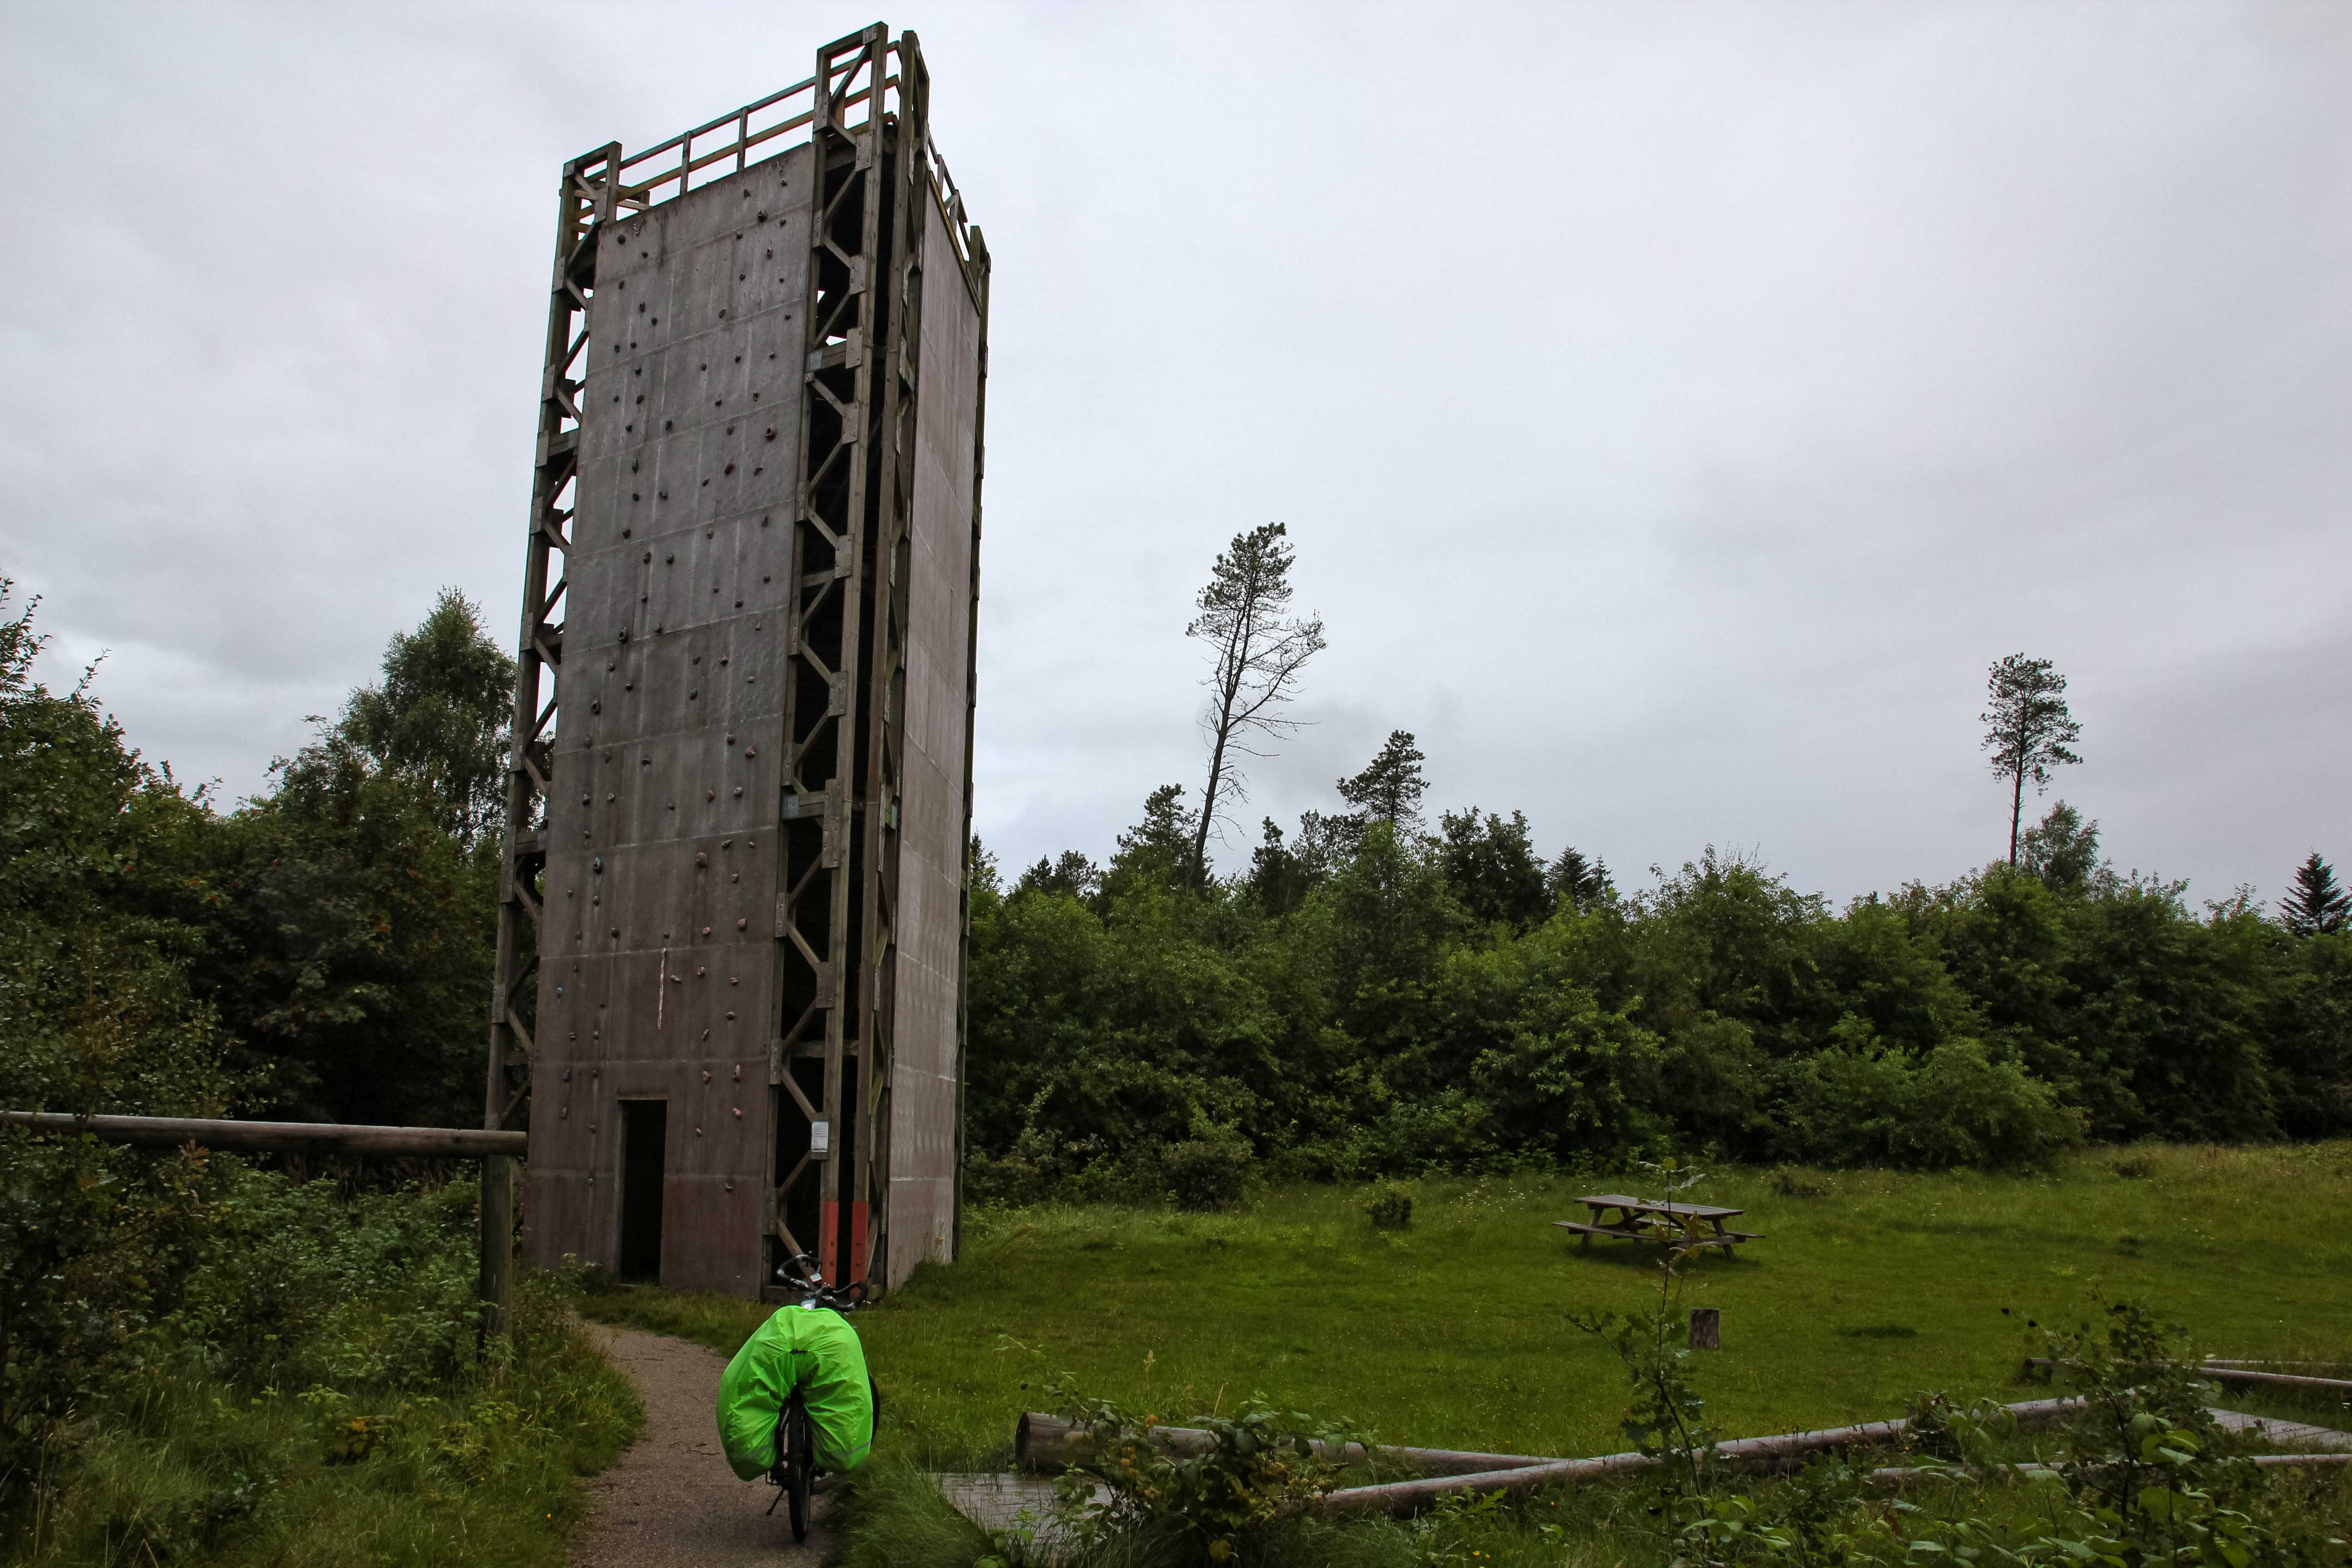 Climbing wall in the forest